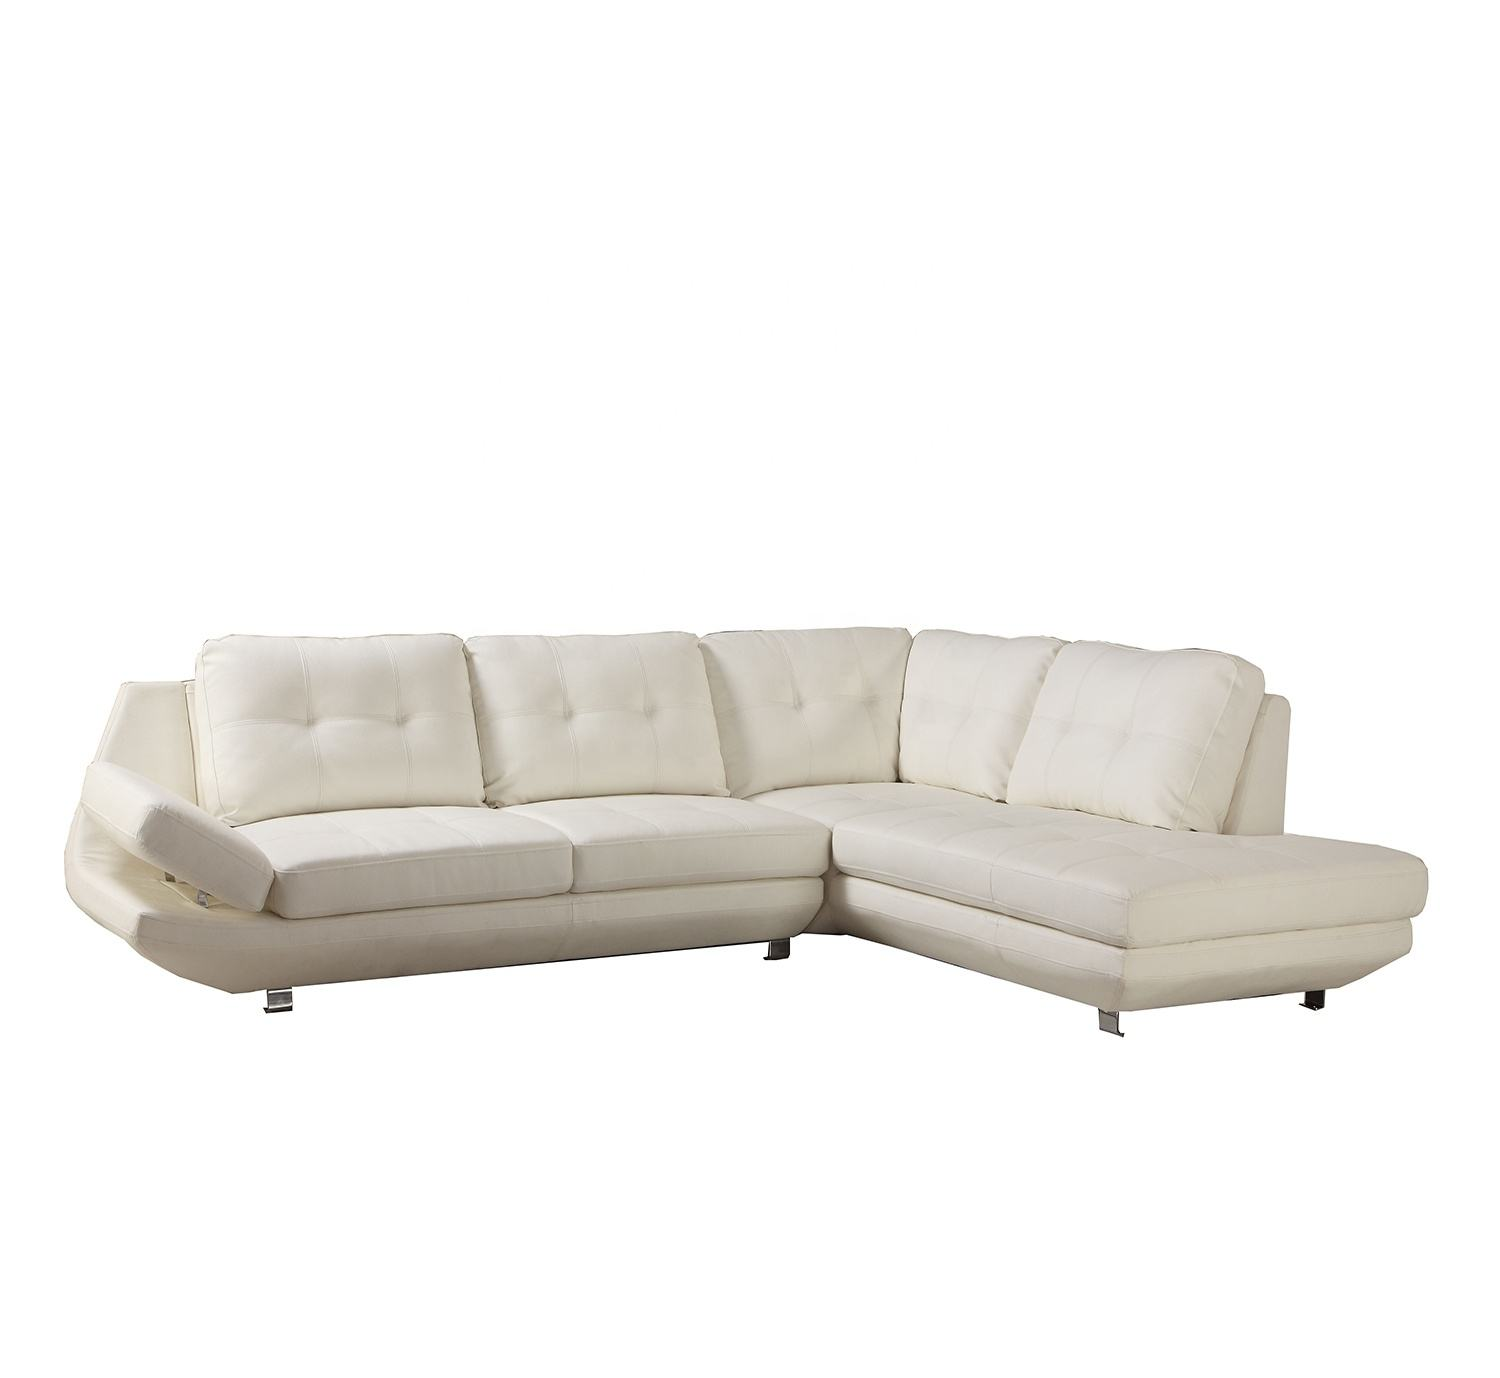 High quality pure white leather manufacturing daily furniture metal feet with double chaise sectional corner sofa